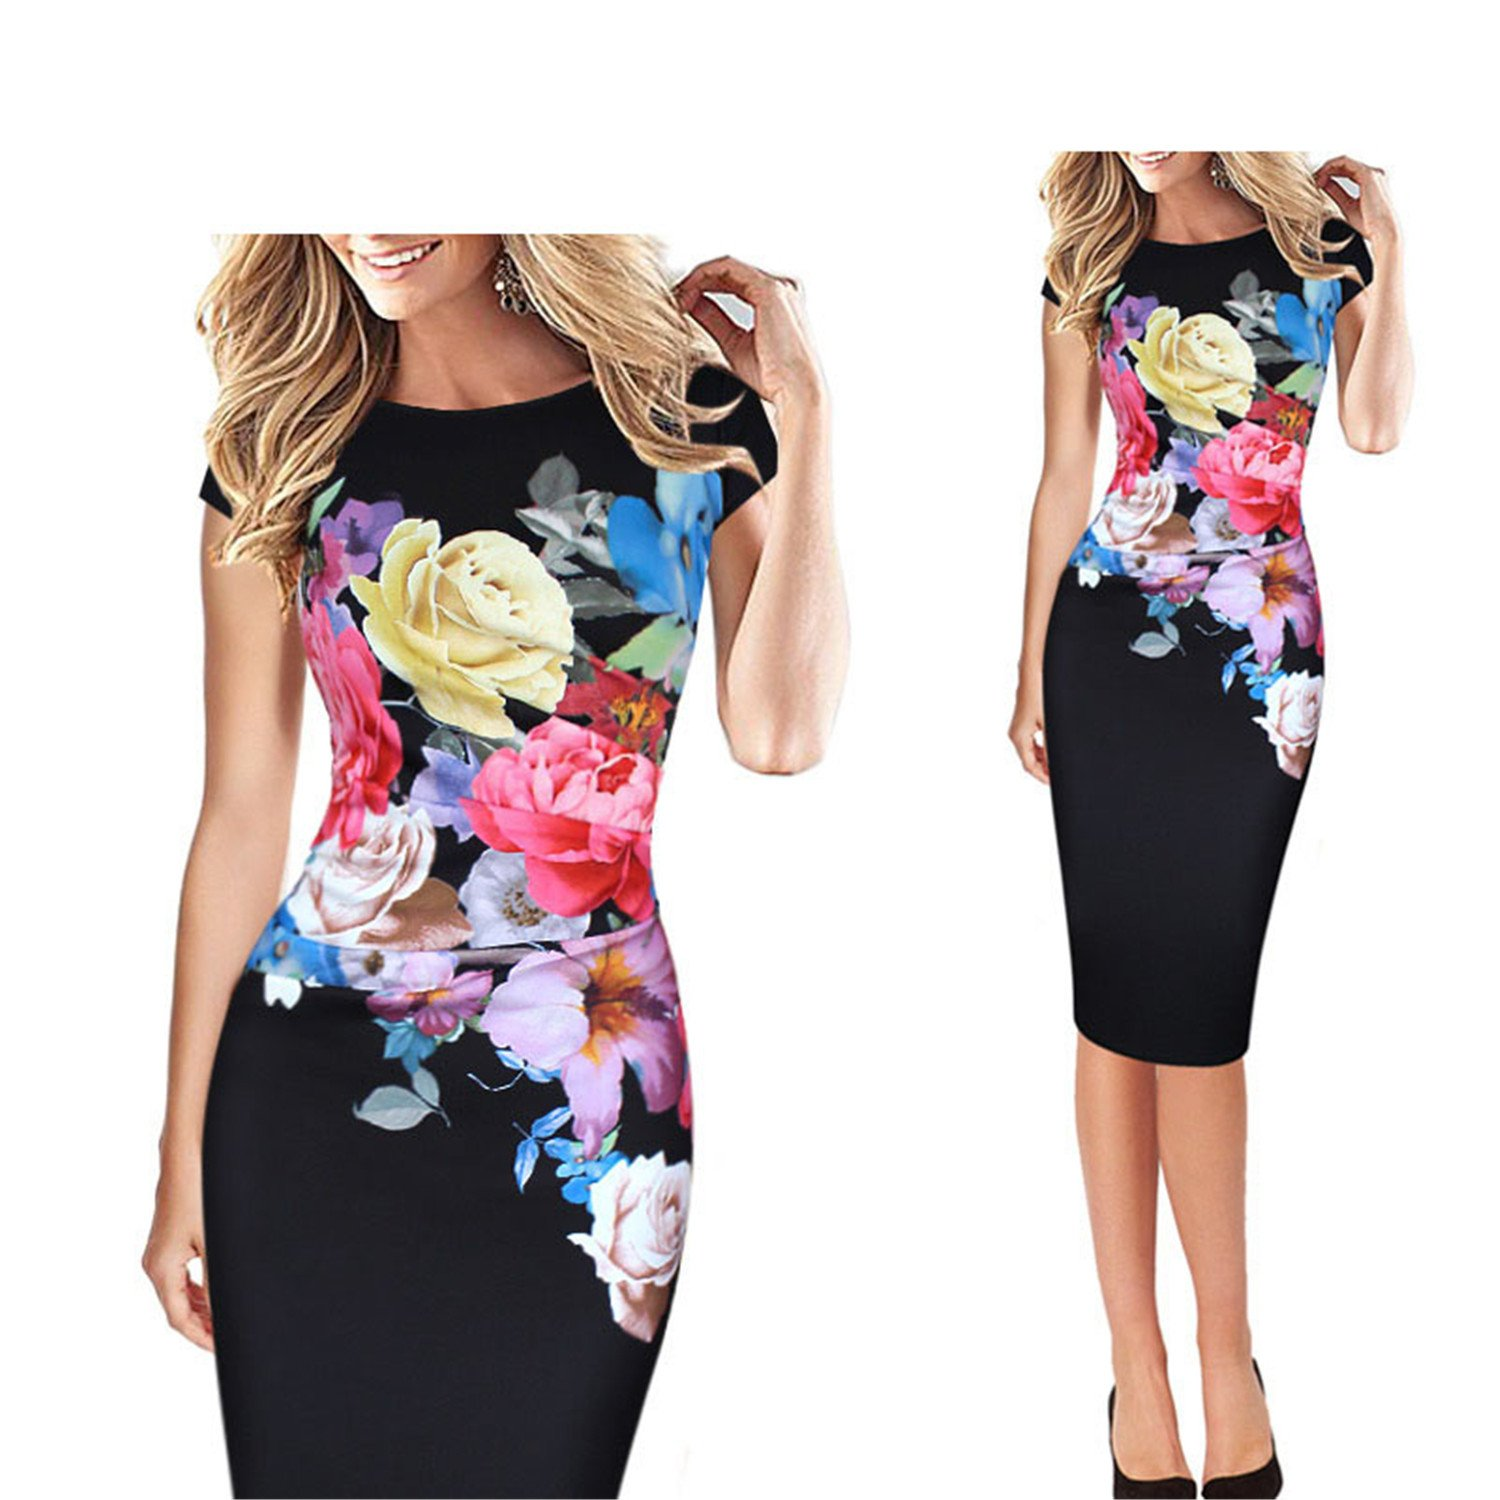 ylovego Womens Elegant Flower Floral Printed Ruched Cap Sleeve Ruffle Casual br Black